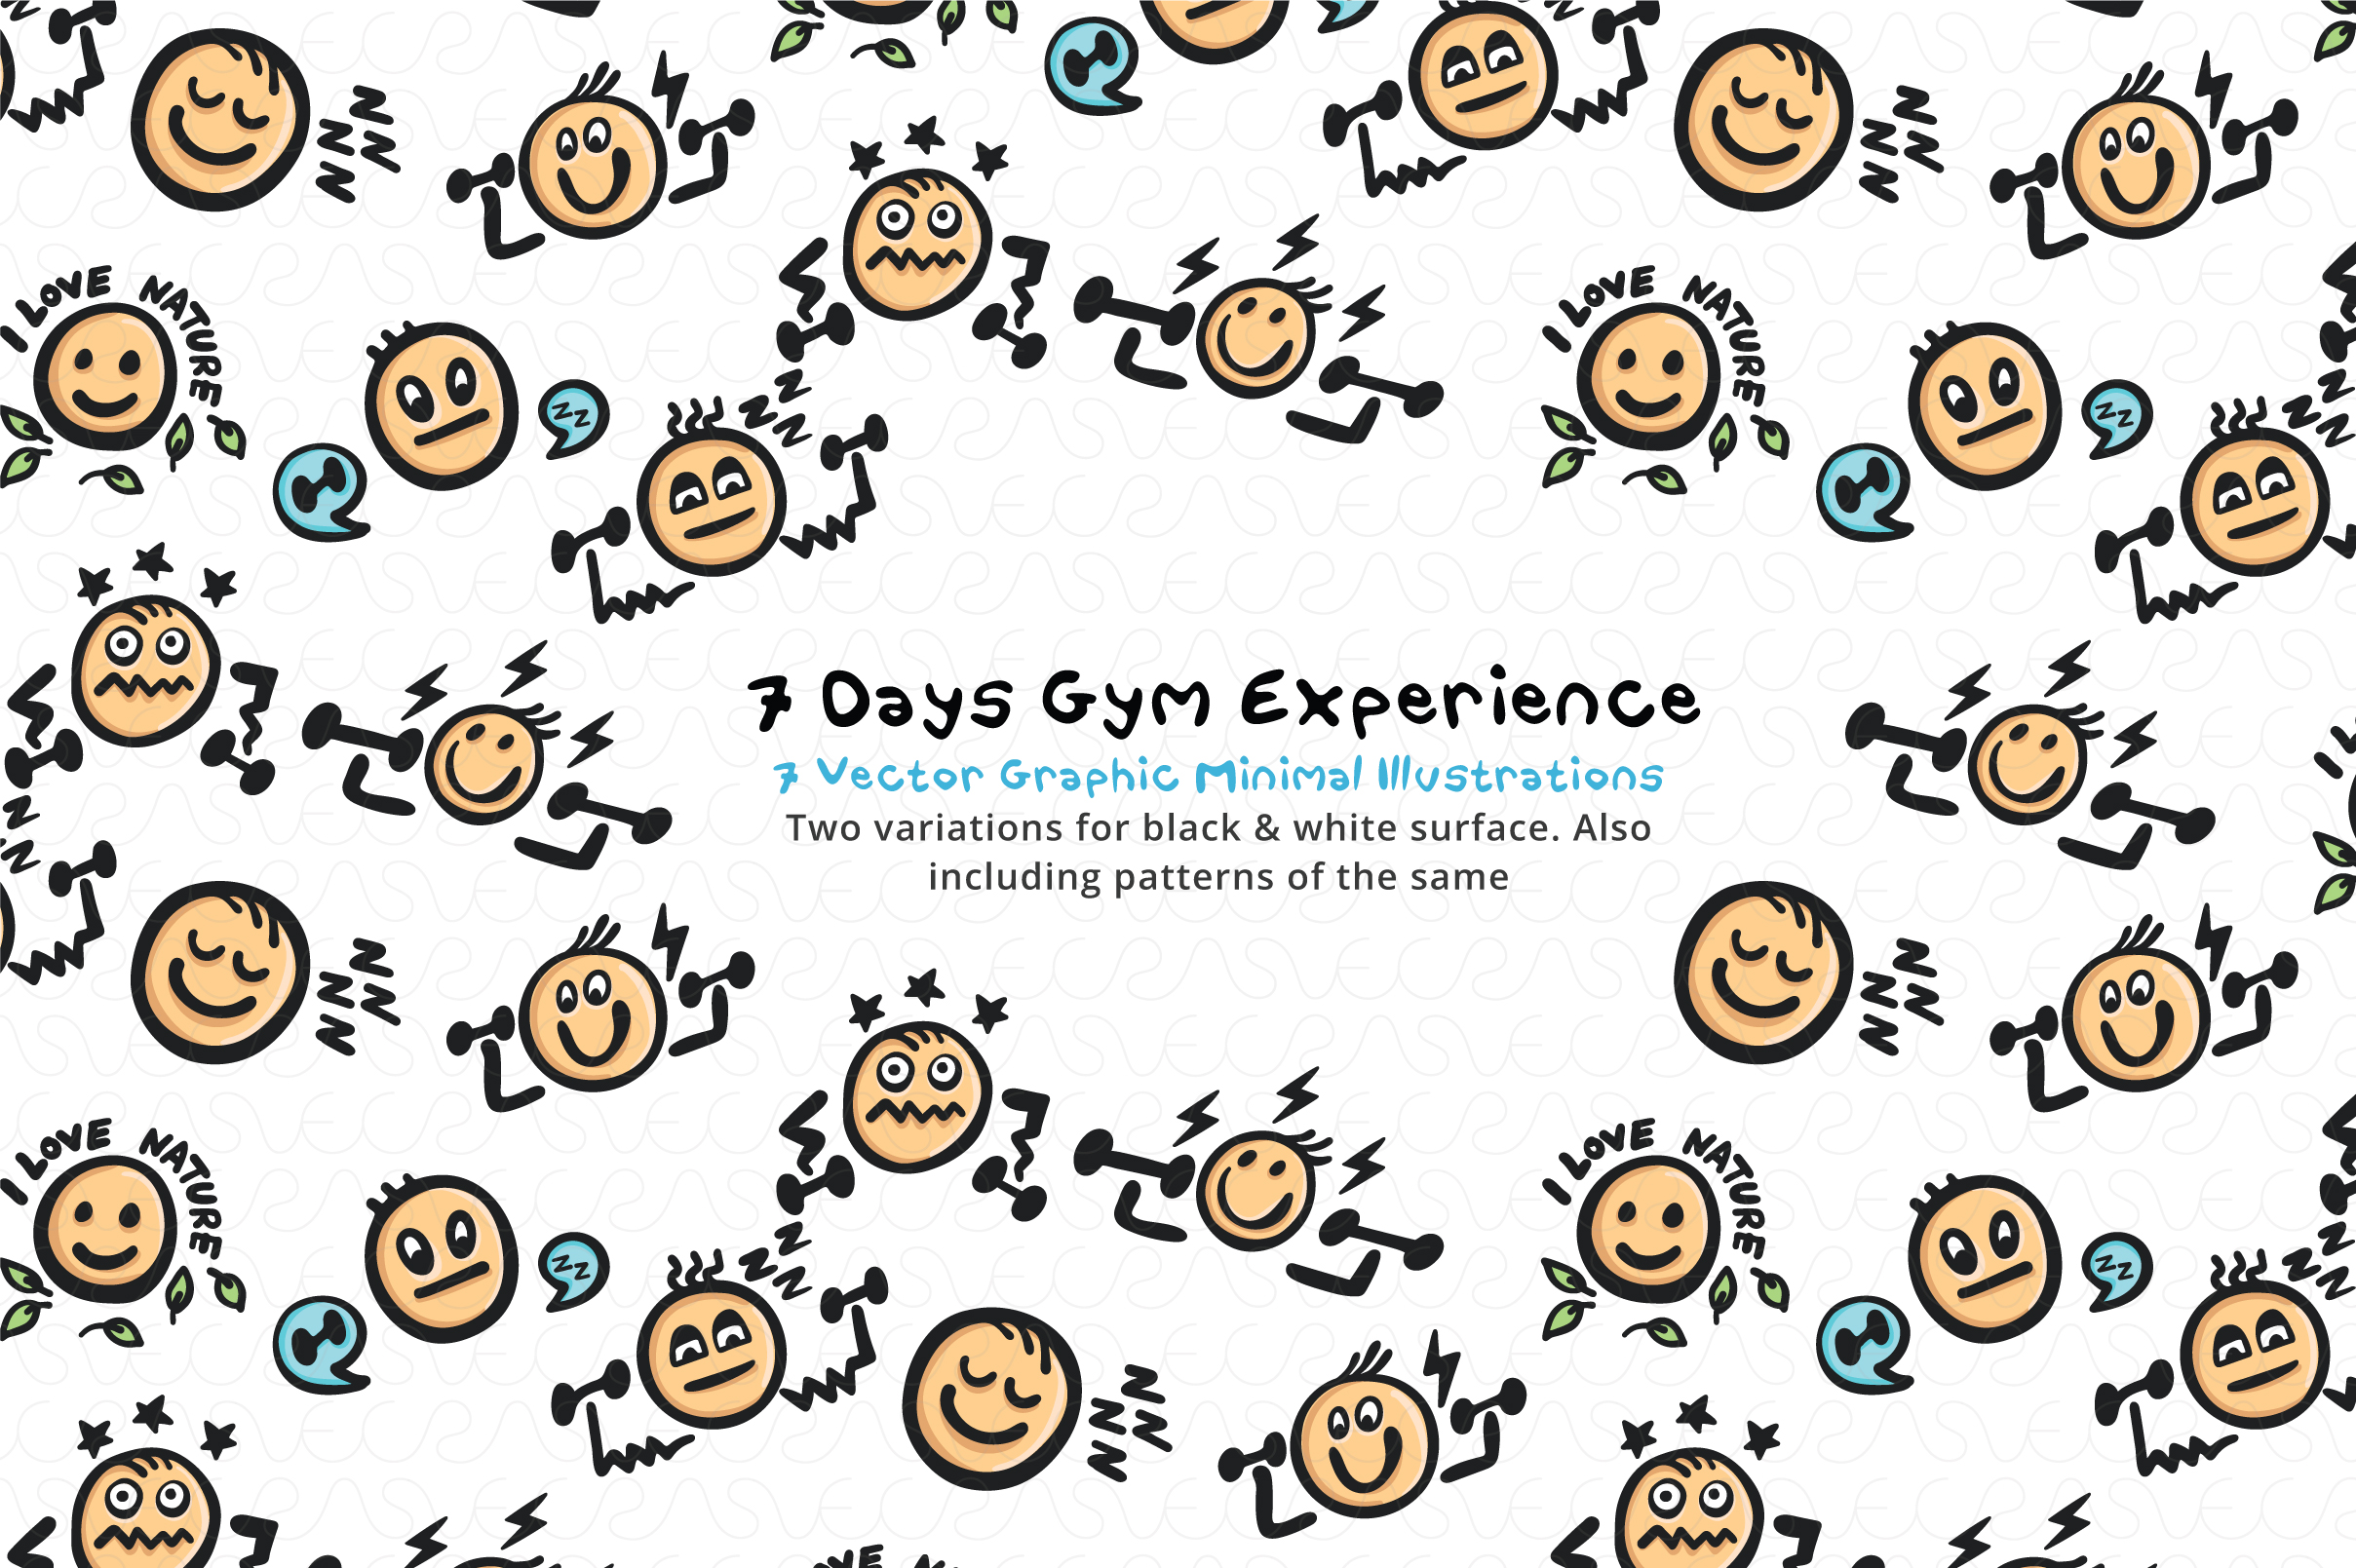 7 Days Gym Begginner Level / Graphics Pack example image 4